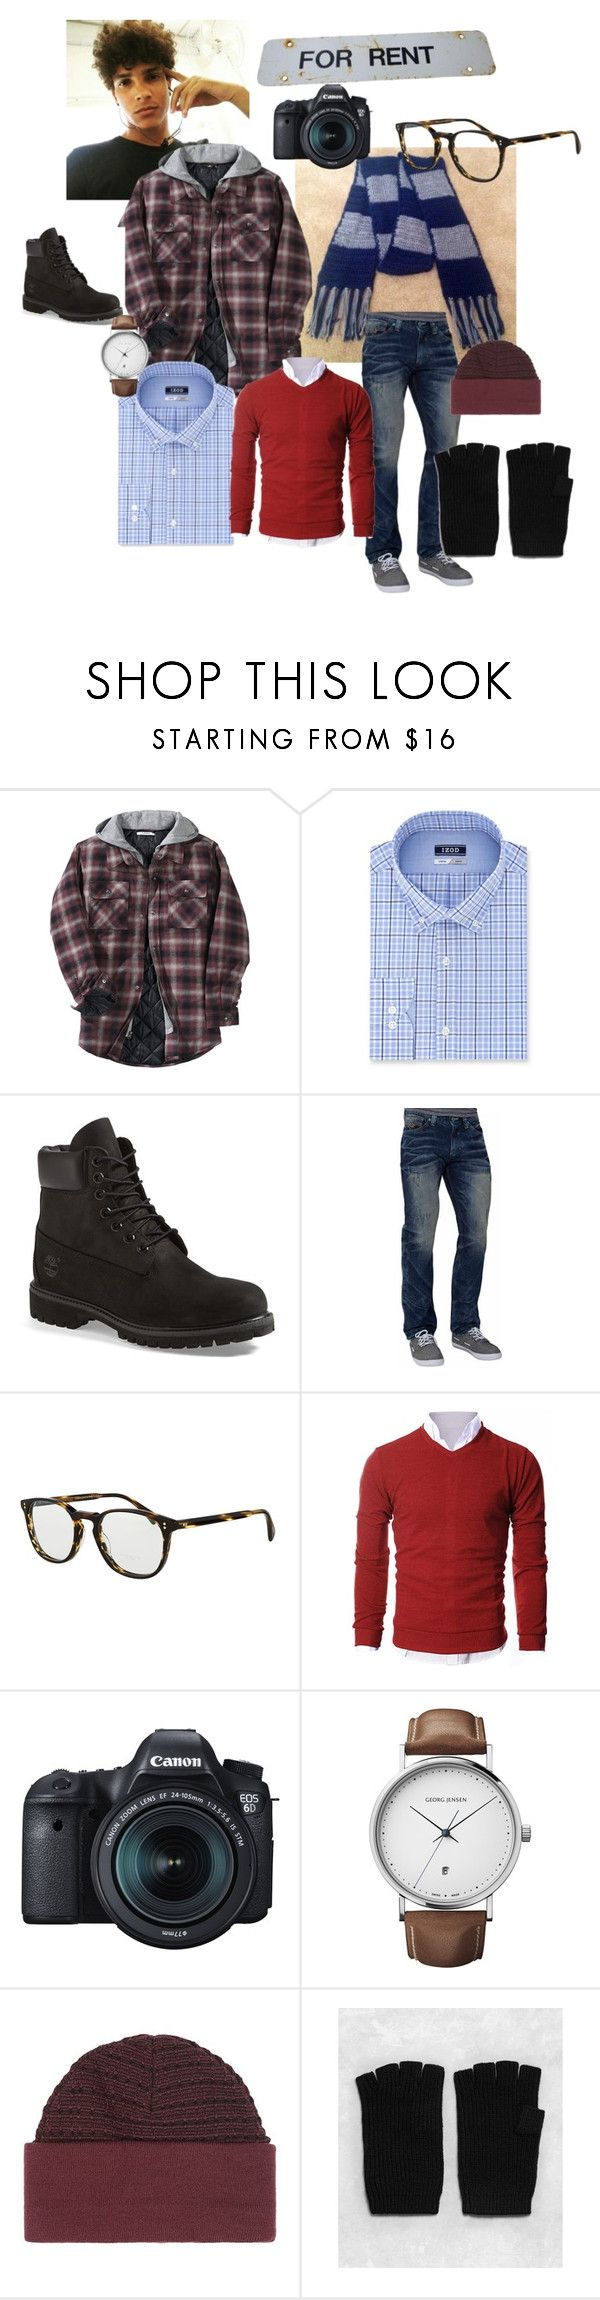 """Mark Cohen (Rent)"" by seven-weasels ❤ liked on Polyvore featuring Other, Izod, Timberland, Affliction, Oliver Peoples, Eos, Georg Jensen, Topman, AllSaints and men's fashion"